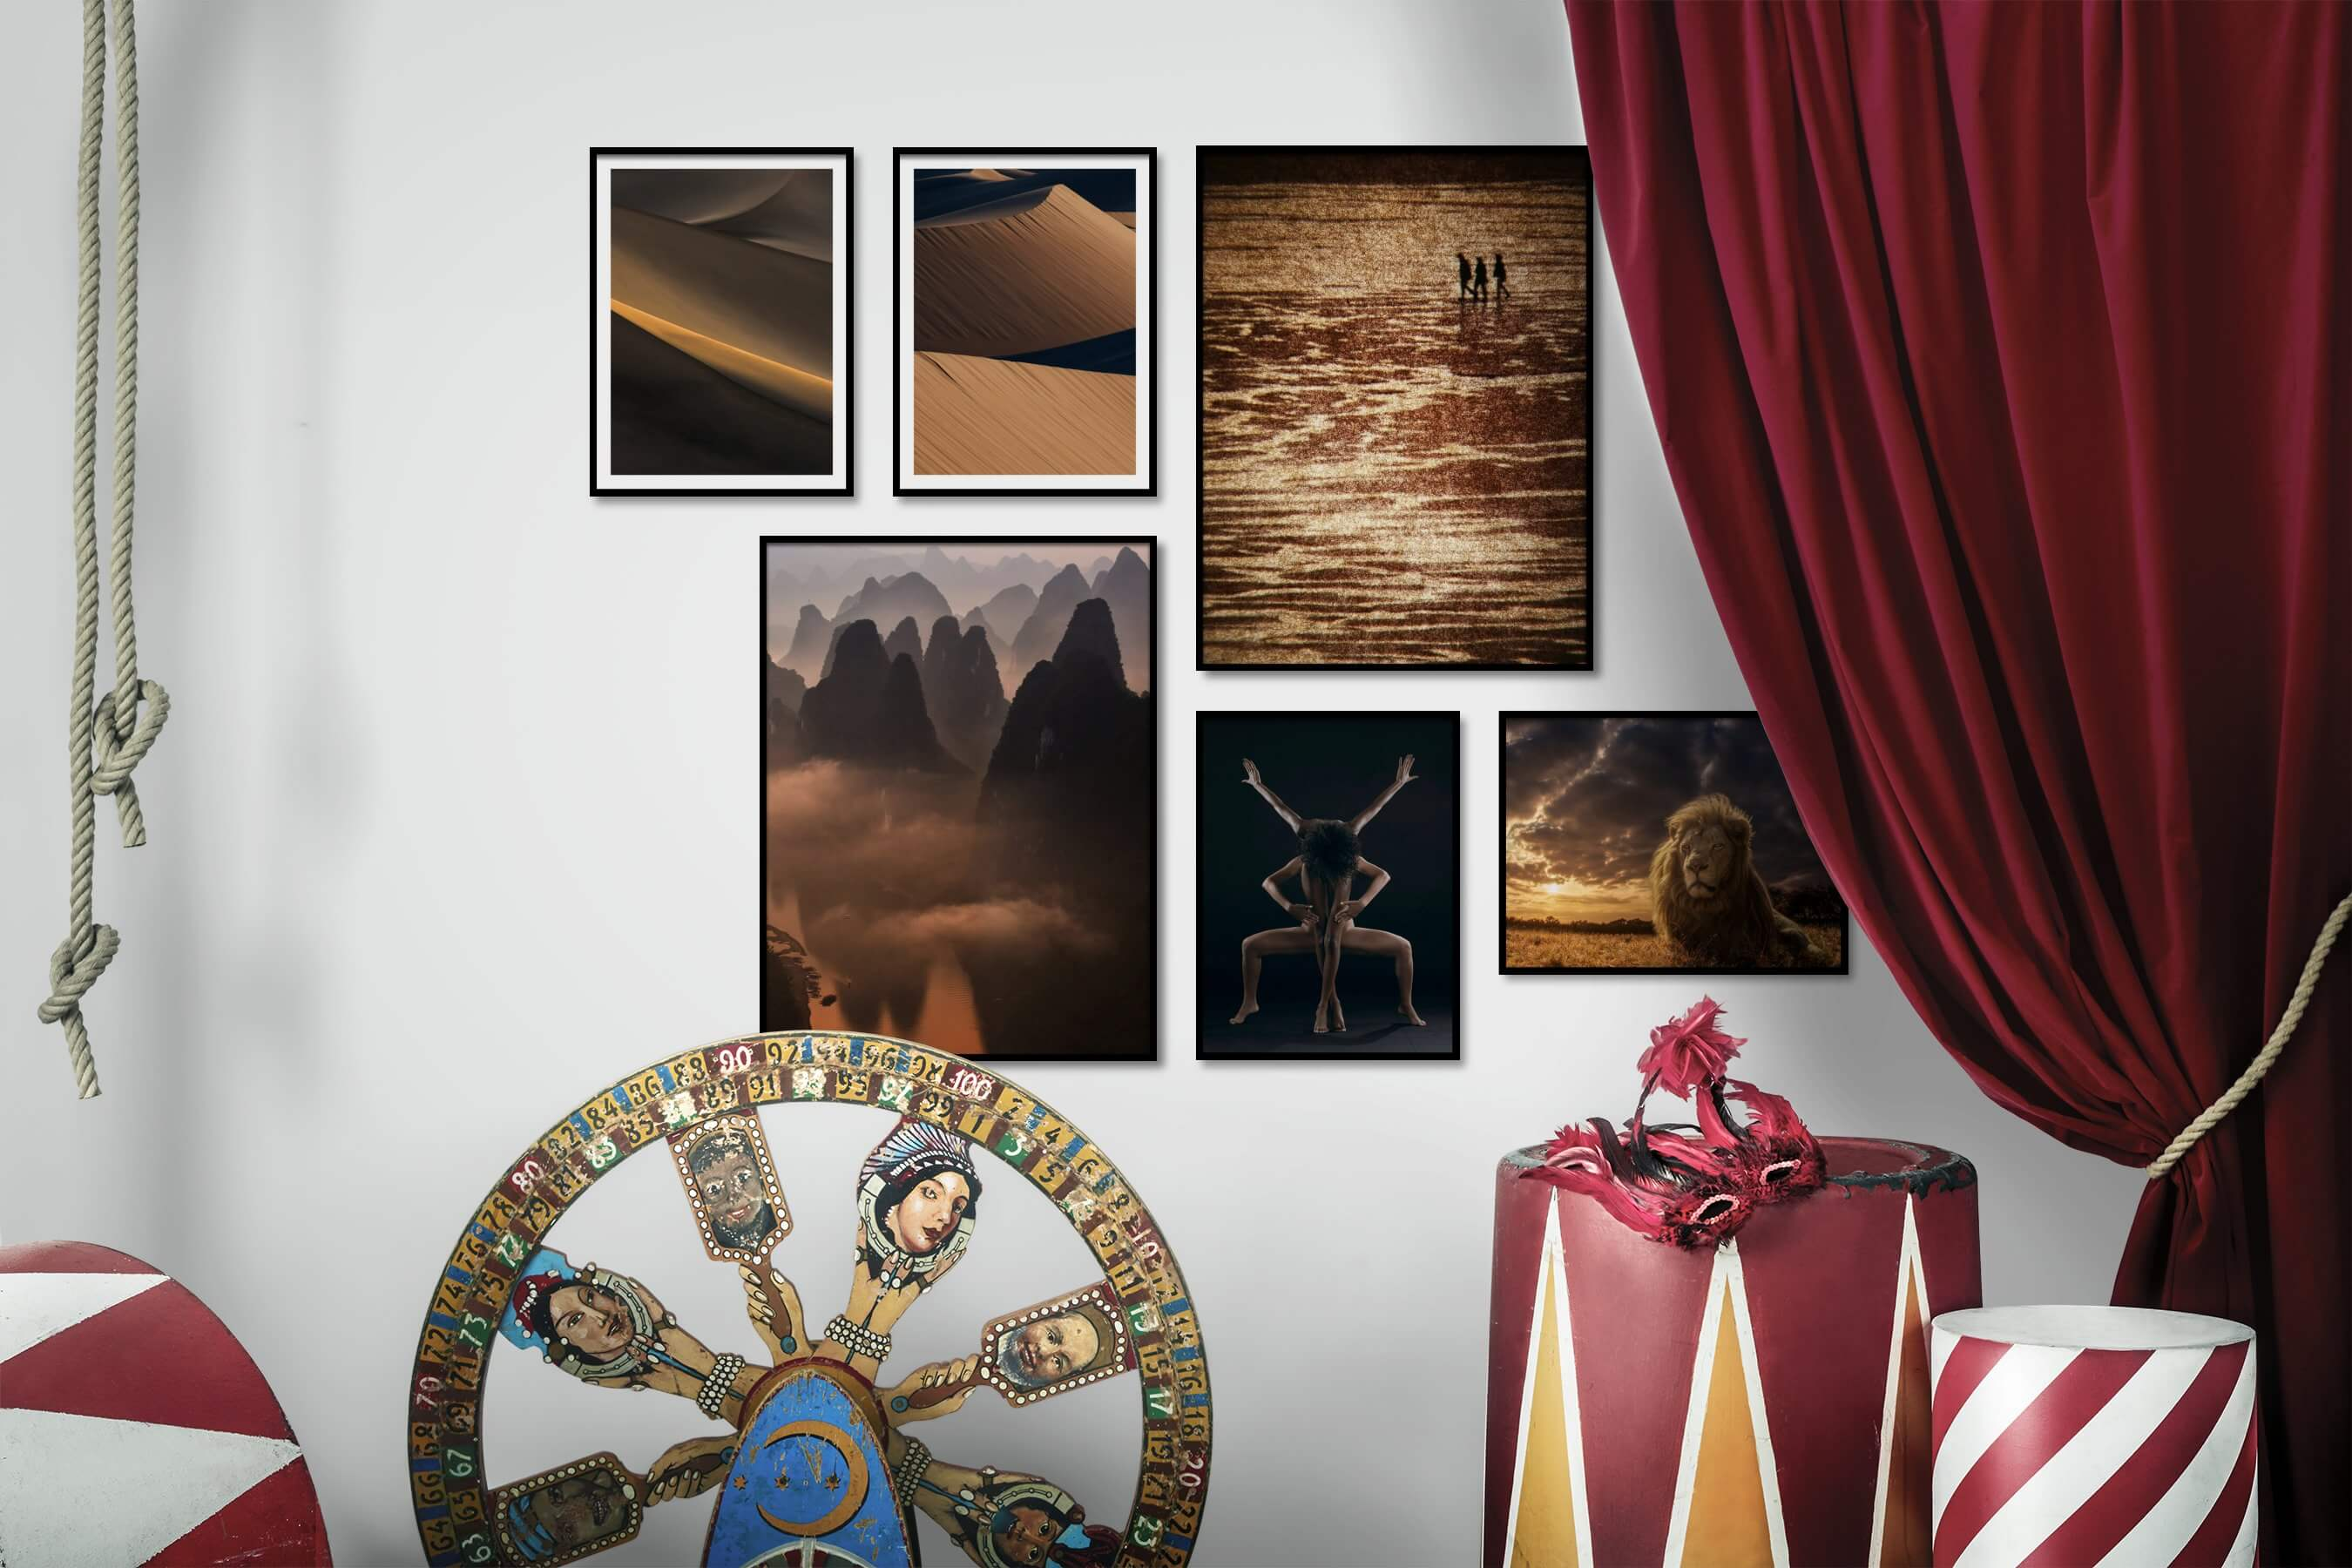 Gallery wall idea with six framed pictures arranged on a wall depicting For the Moderate, Nature, Mindfulness, Country Life, Artsy, Dark Tones, For the Minimalist, and Animals